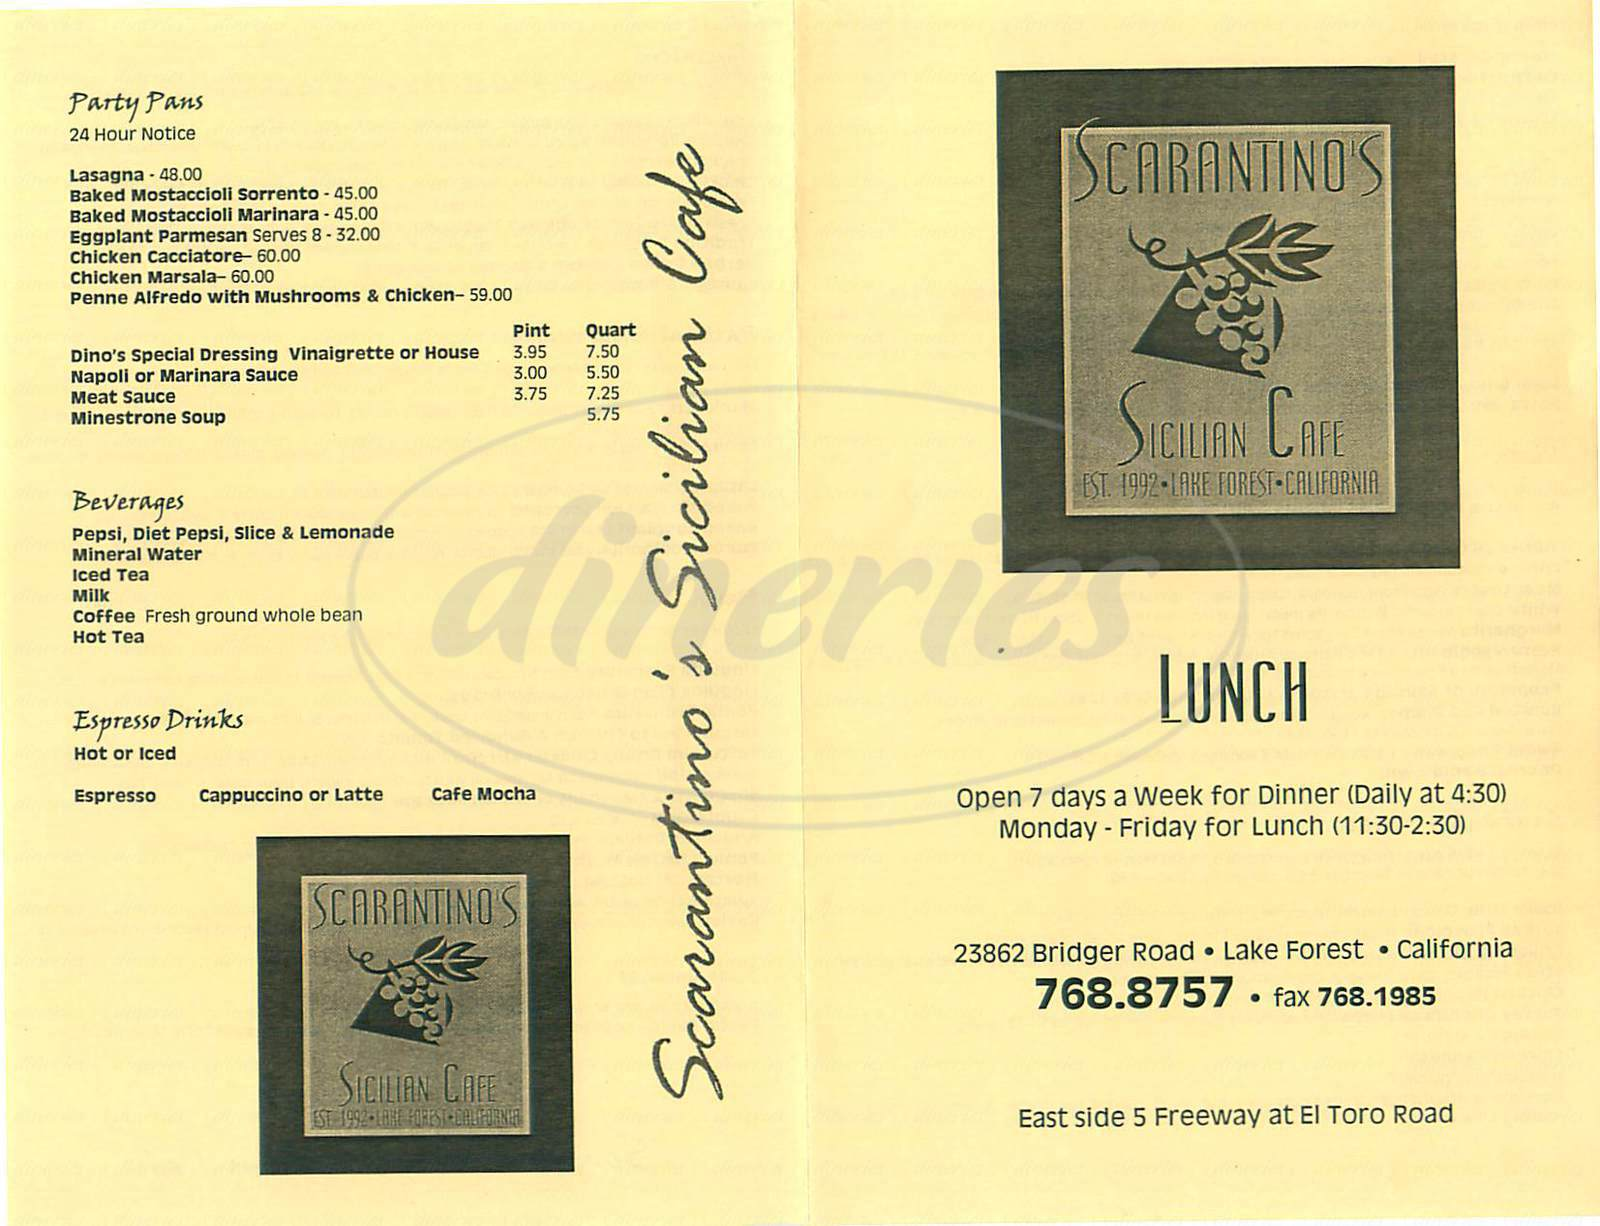 menu for Scarantinos Sicilian Café